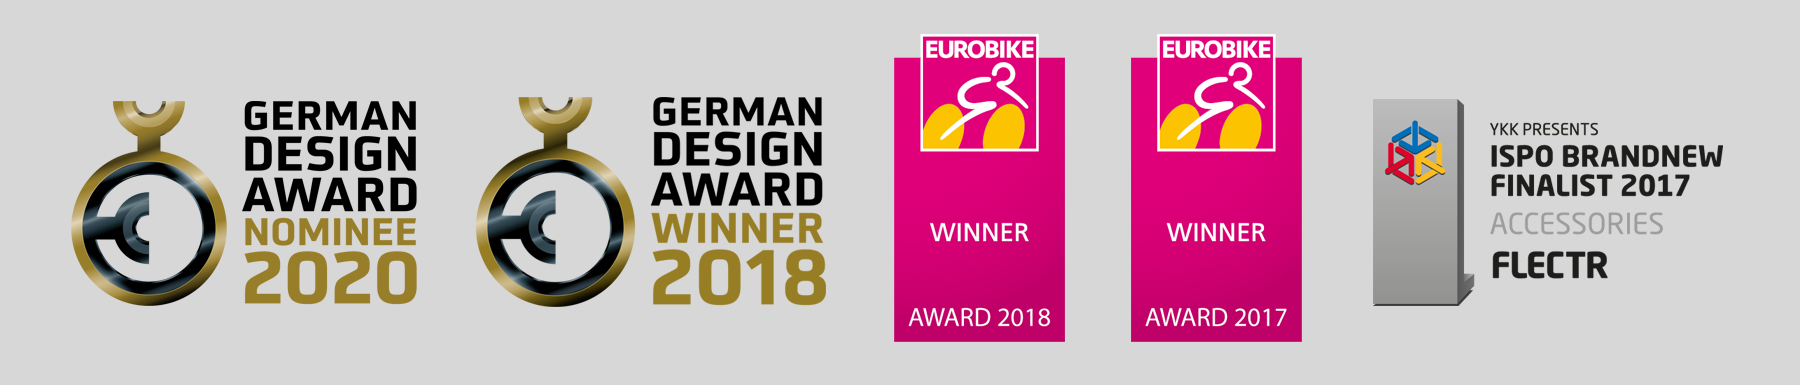 FLECTR BIKE - German Design Award Niminee 2020 - German Design Award Winner 2018 - EUROBIKE AWARD WINNER 2018 - ISPO BRAND-NEW AWARD 2017 - EUROBIKE AWARD WINNER 2017